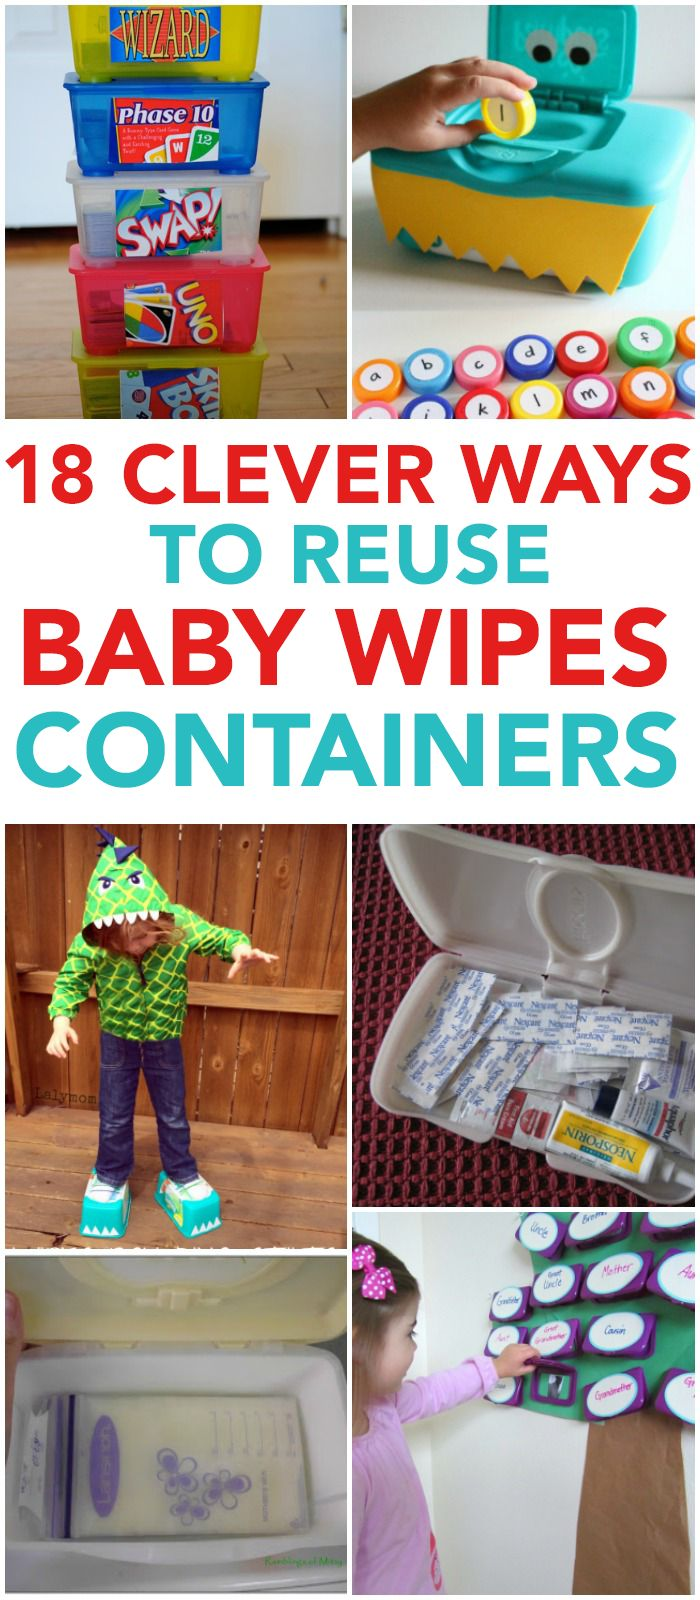 Clever and fun ways to reuse baby wipes containers. Fun hacks!